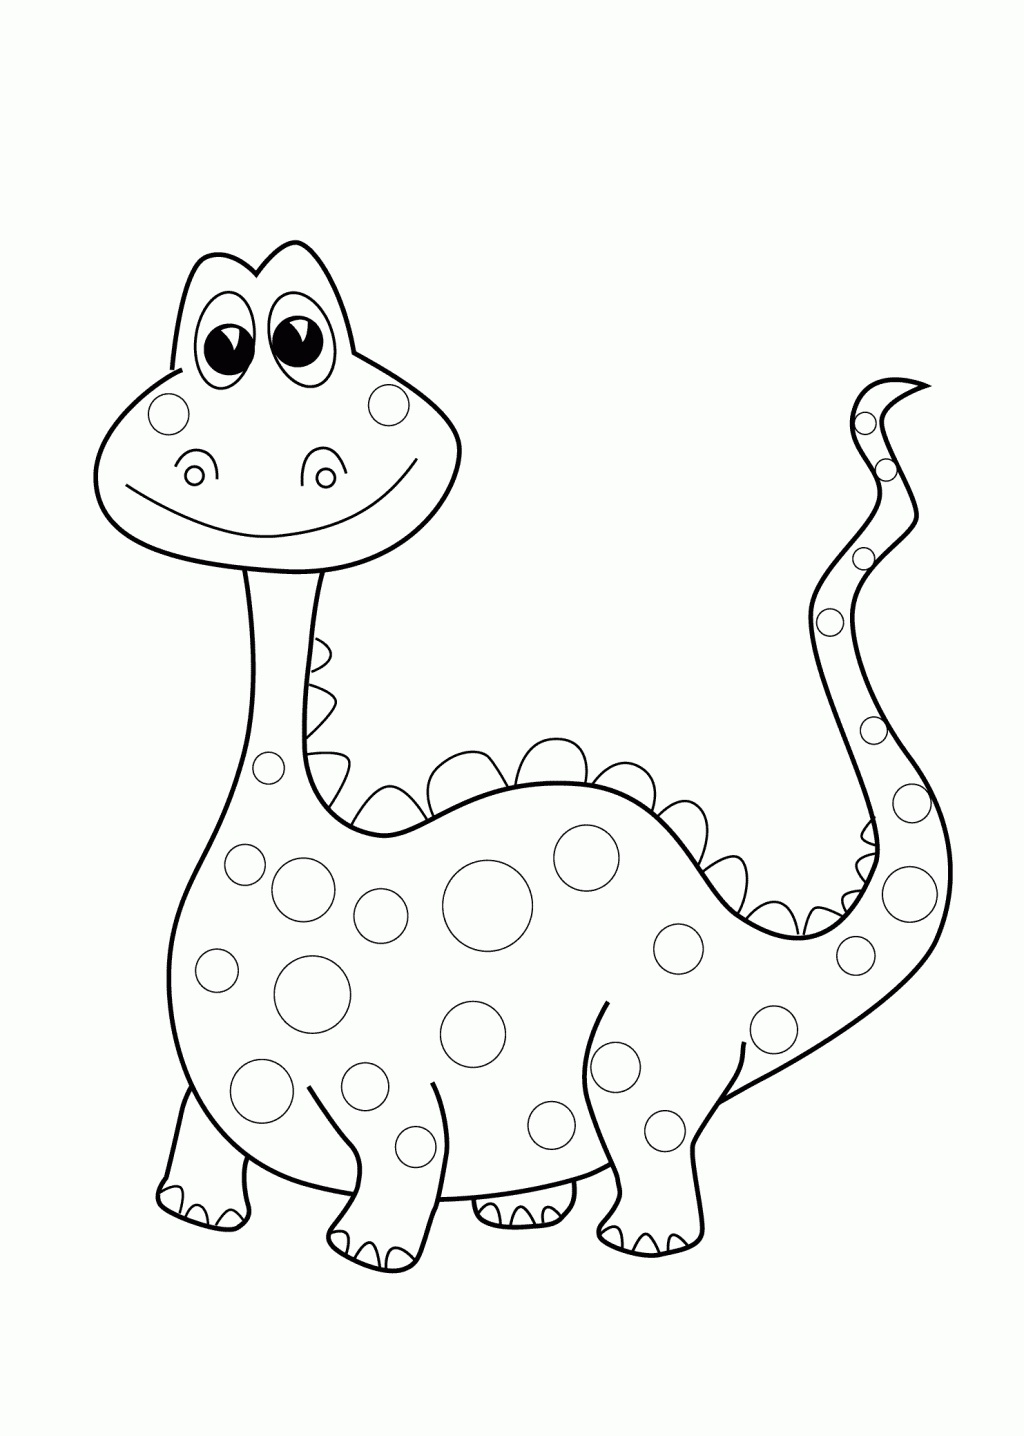 Coloring Page ~ Printable Coloring Pages For Preschoolers Fair - Free Printable Coloring Pages For Preschoolers